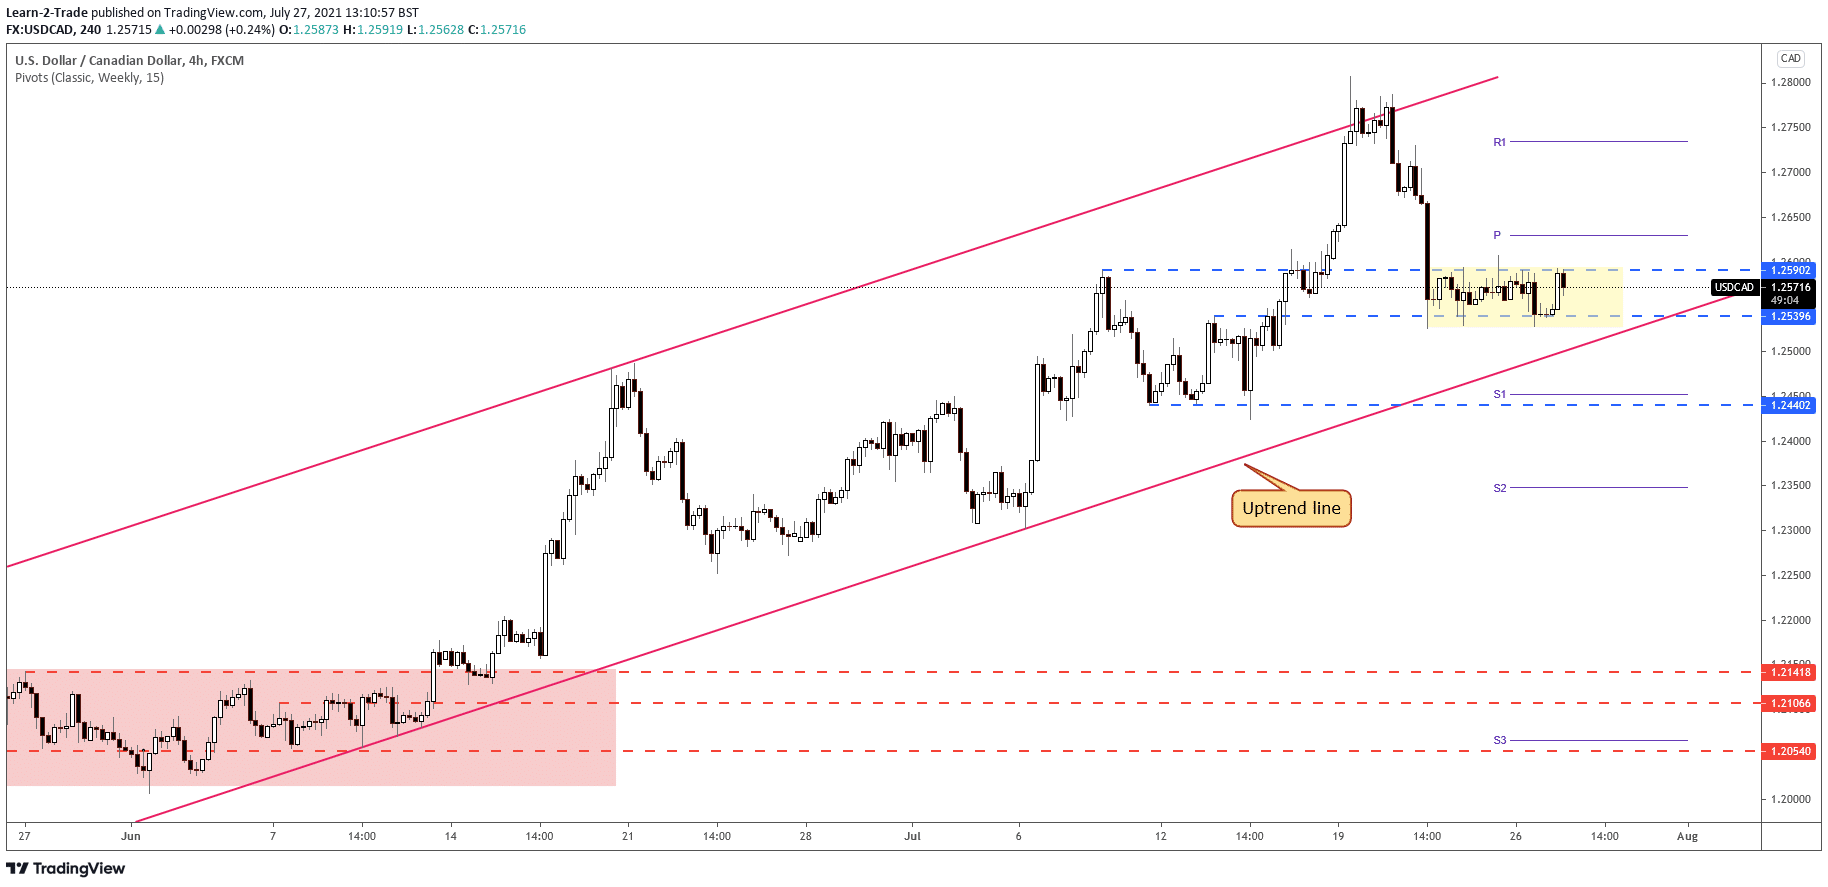 USD/CAD 4price on 4-hour chart